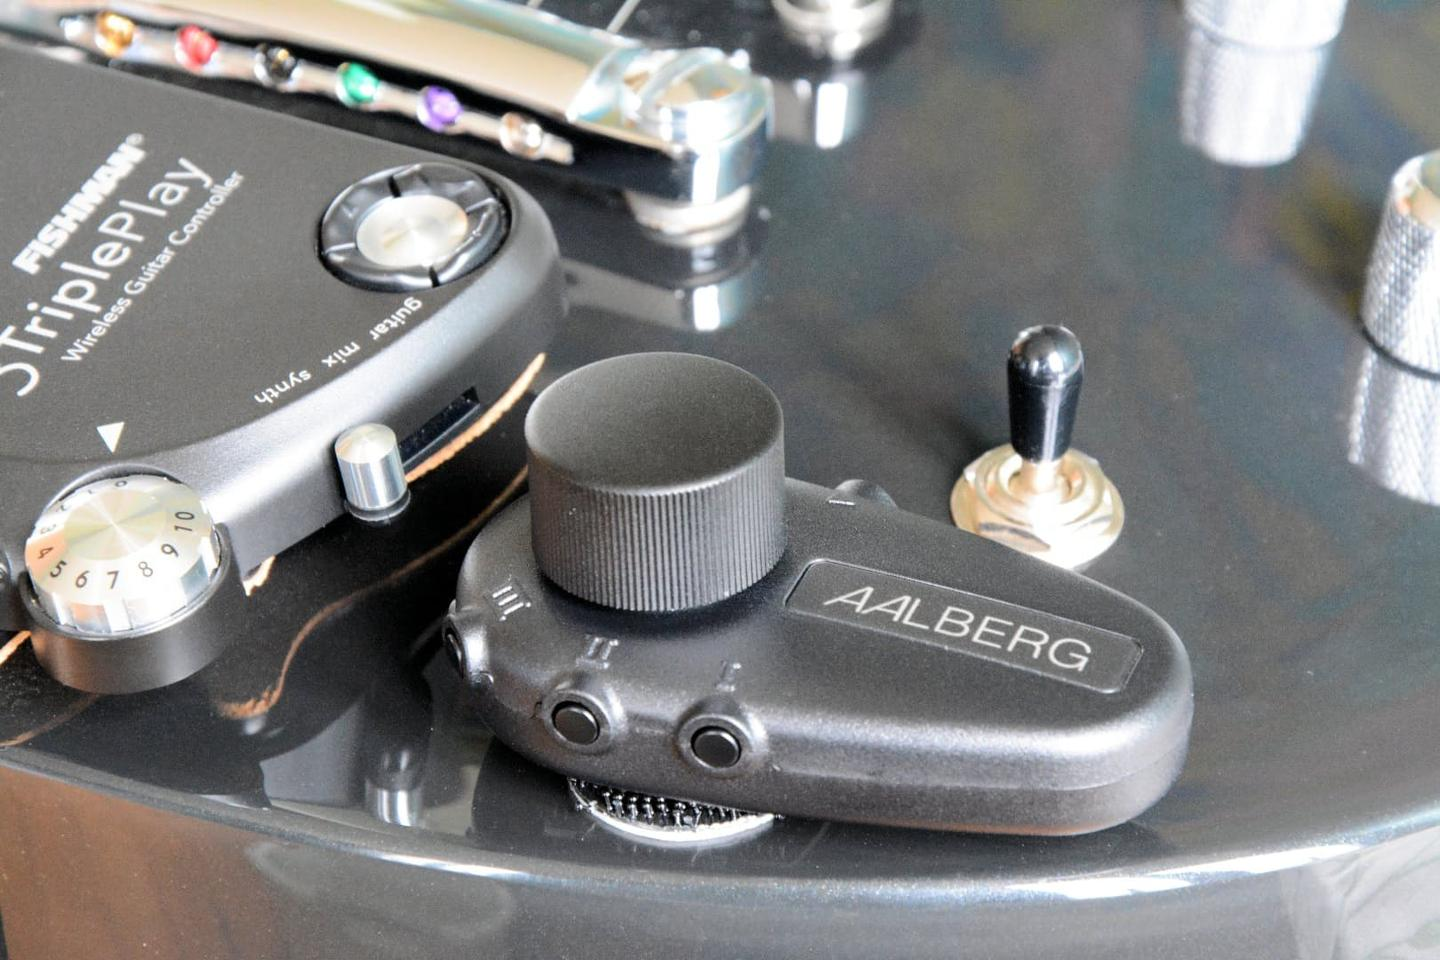 The Aalberg Audio Aero Bluetooth controller attaches to a guitar's body with adhesive-backed Velcro